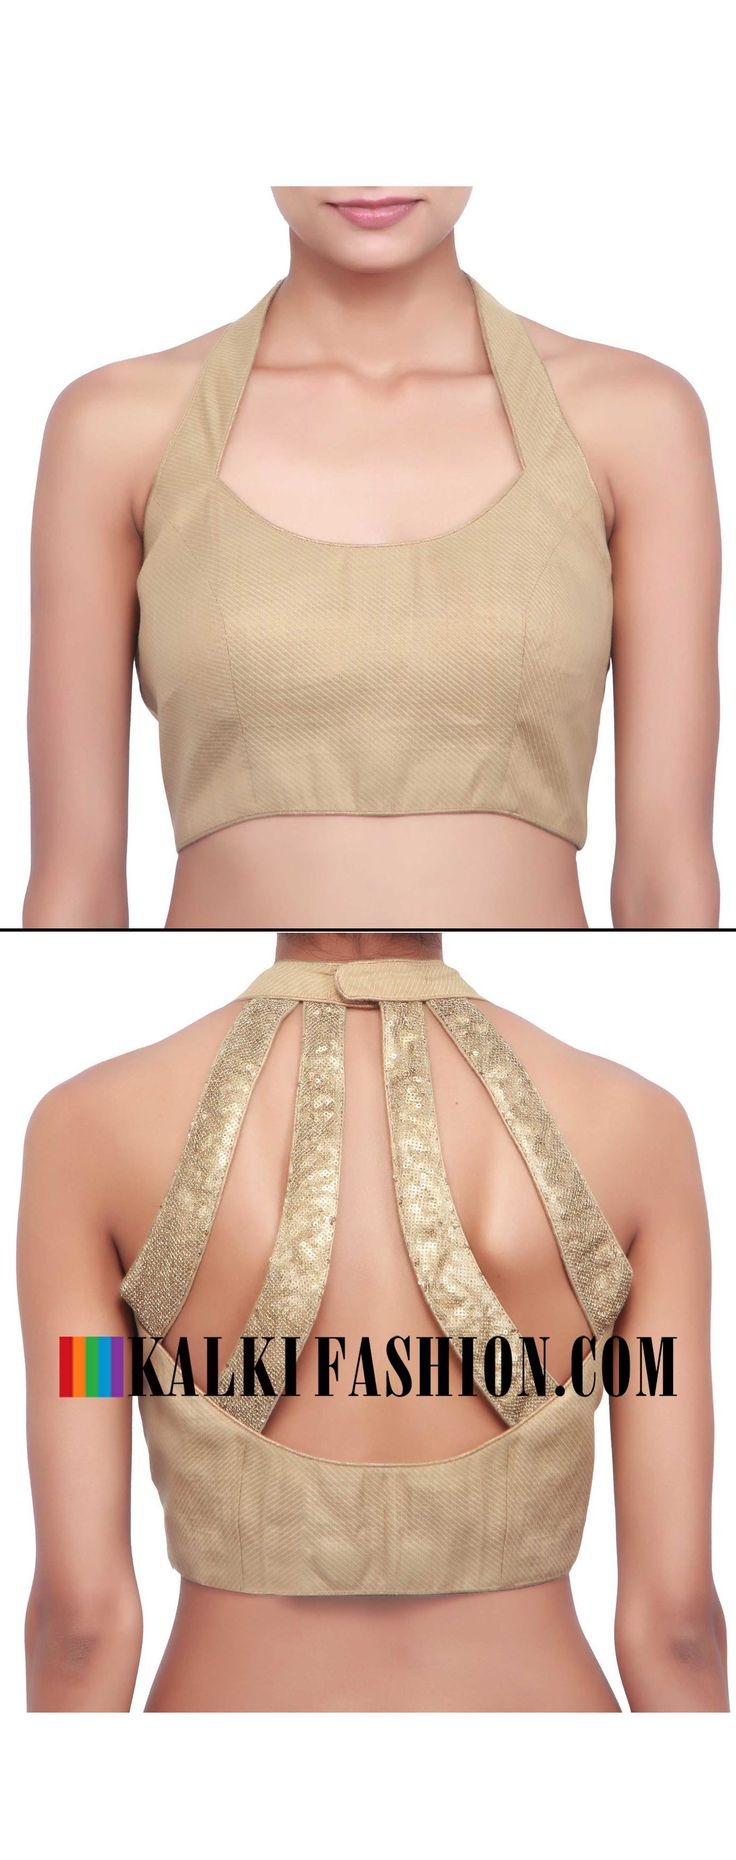 Buy online at: http://www.kalkifashion.com/gold-blouse-with-halter-neckline-only-on-kalki.html Free shipping worldwide.